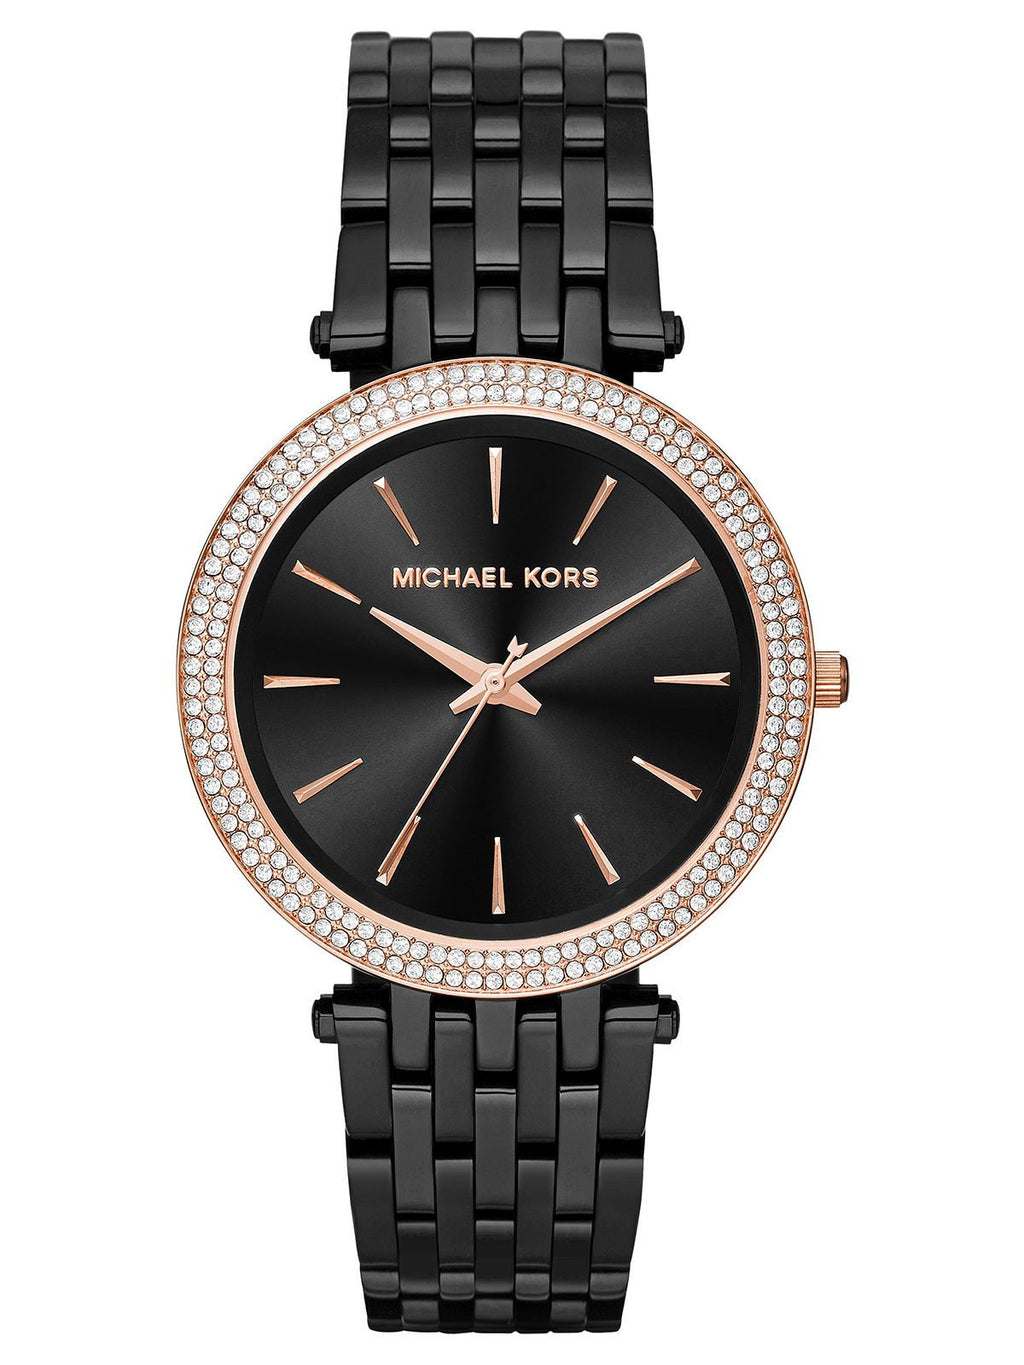 Michael Kors Ladies' Darci Watch MK3407 - JB Watches